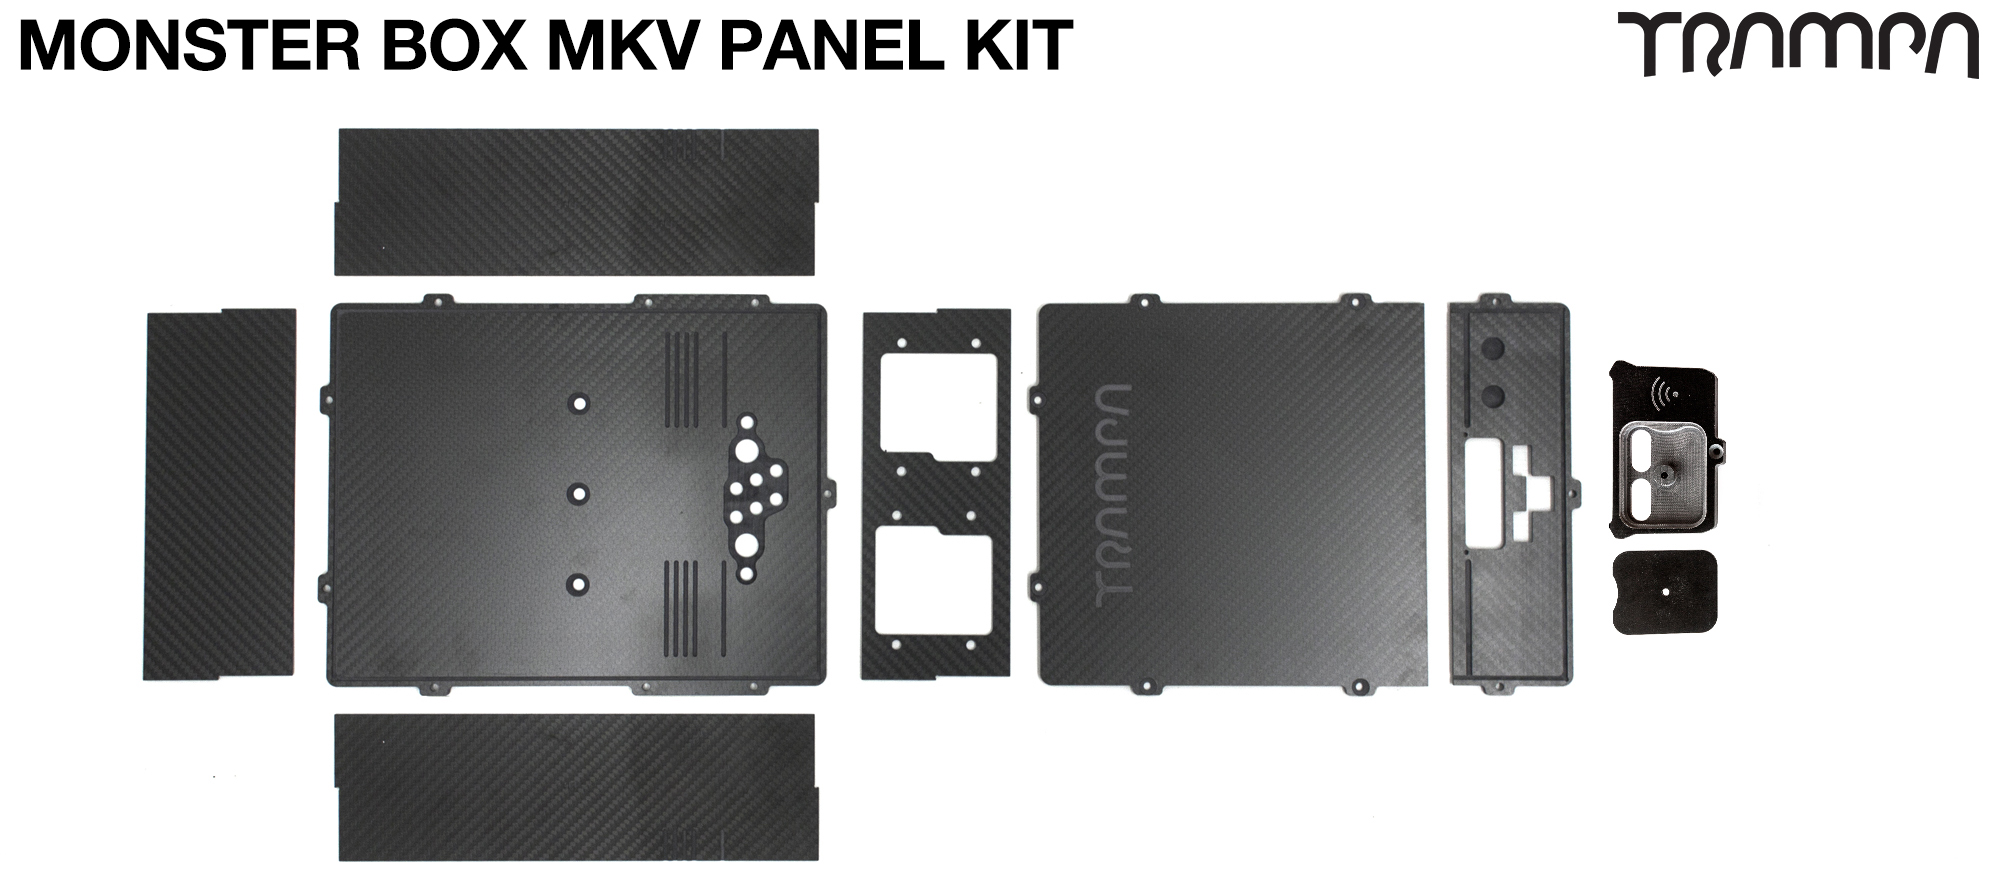 CLASSIC MONSTER Box MkIV Complete Panel Kit with internal chamber for TWIN VESC & Inspection pit for Balance cables